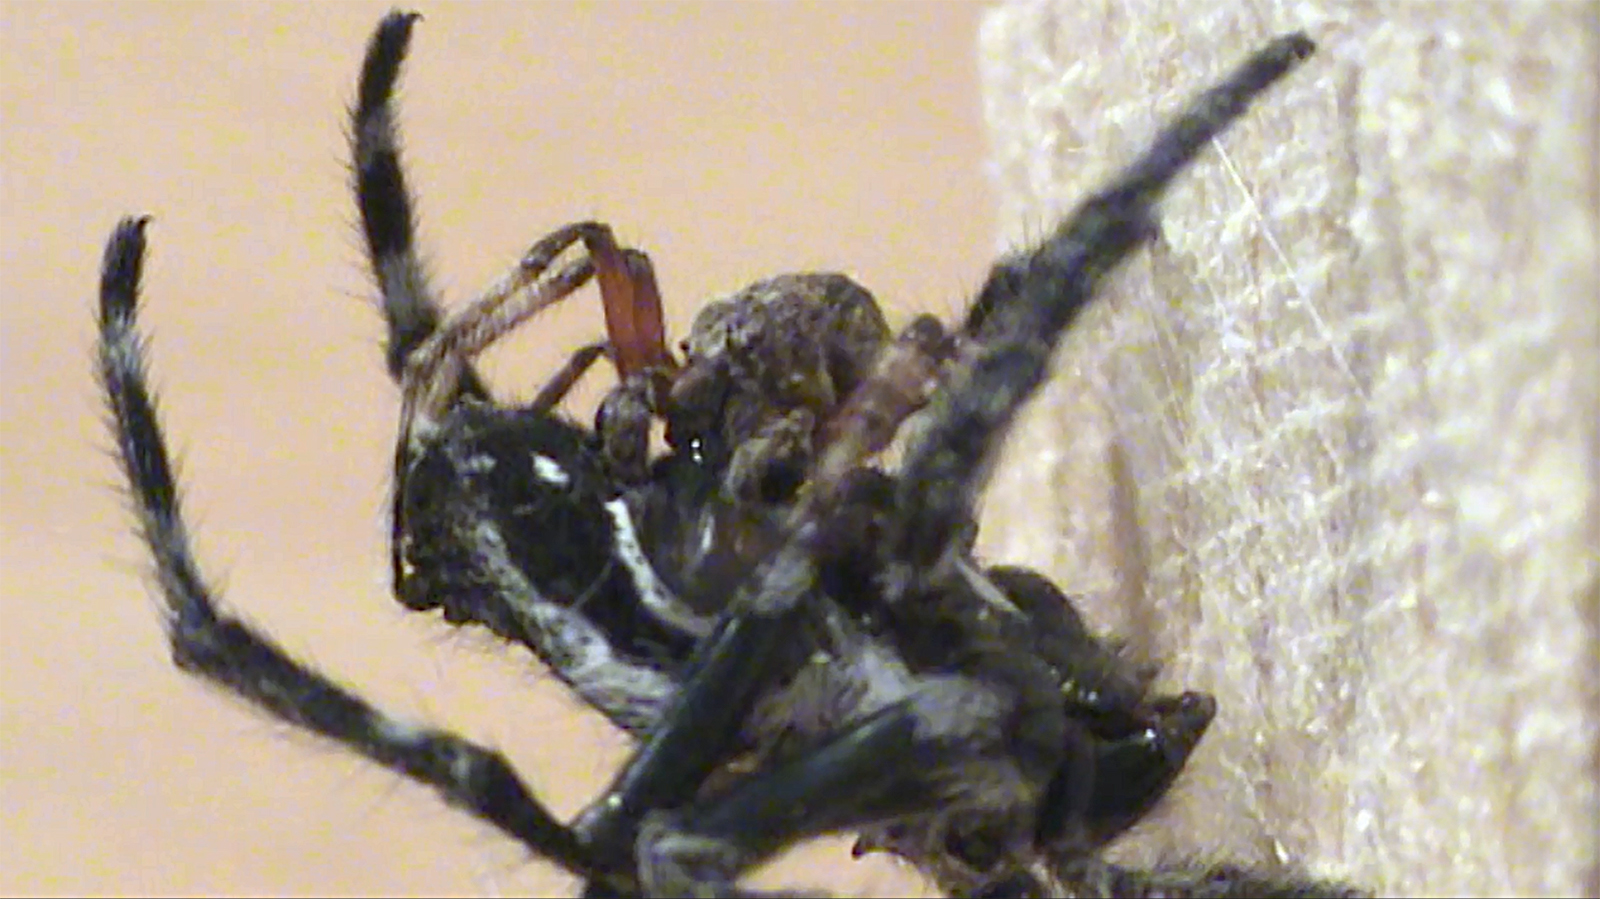 Before, during, and after mating, the male Darwin's bark spider salivates over the female's epigyne, presumably to increase his reproductive success. Credit: Research Centre of the Slovenian Academy of Sciences and Arts